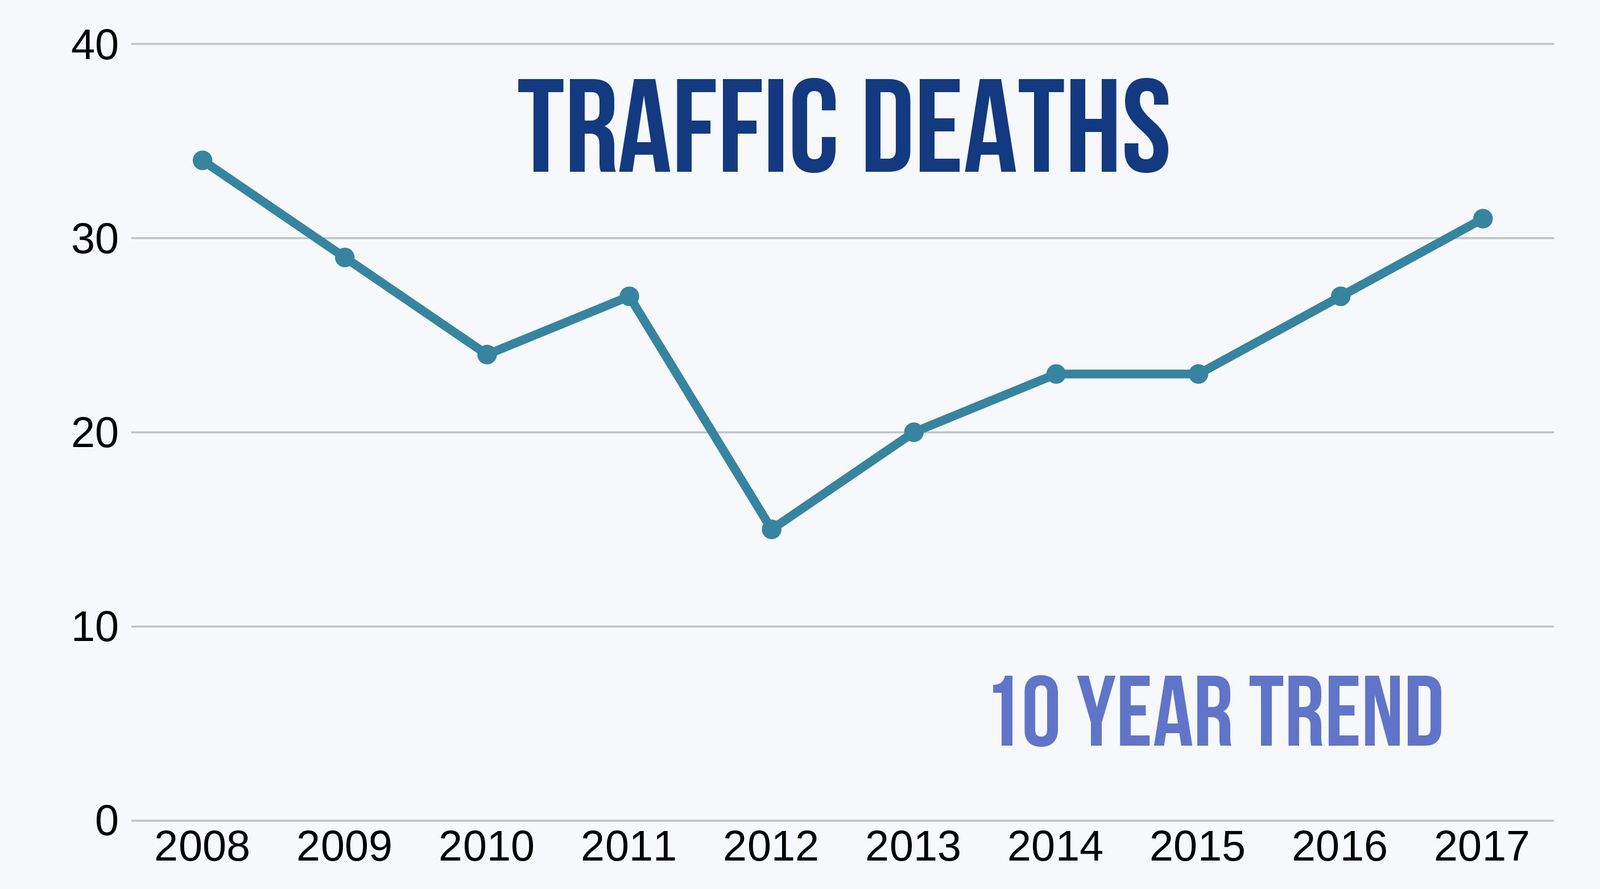 10 Year trend for traffic deaths in DC